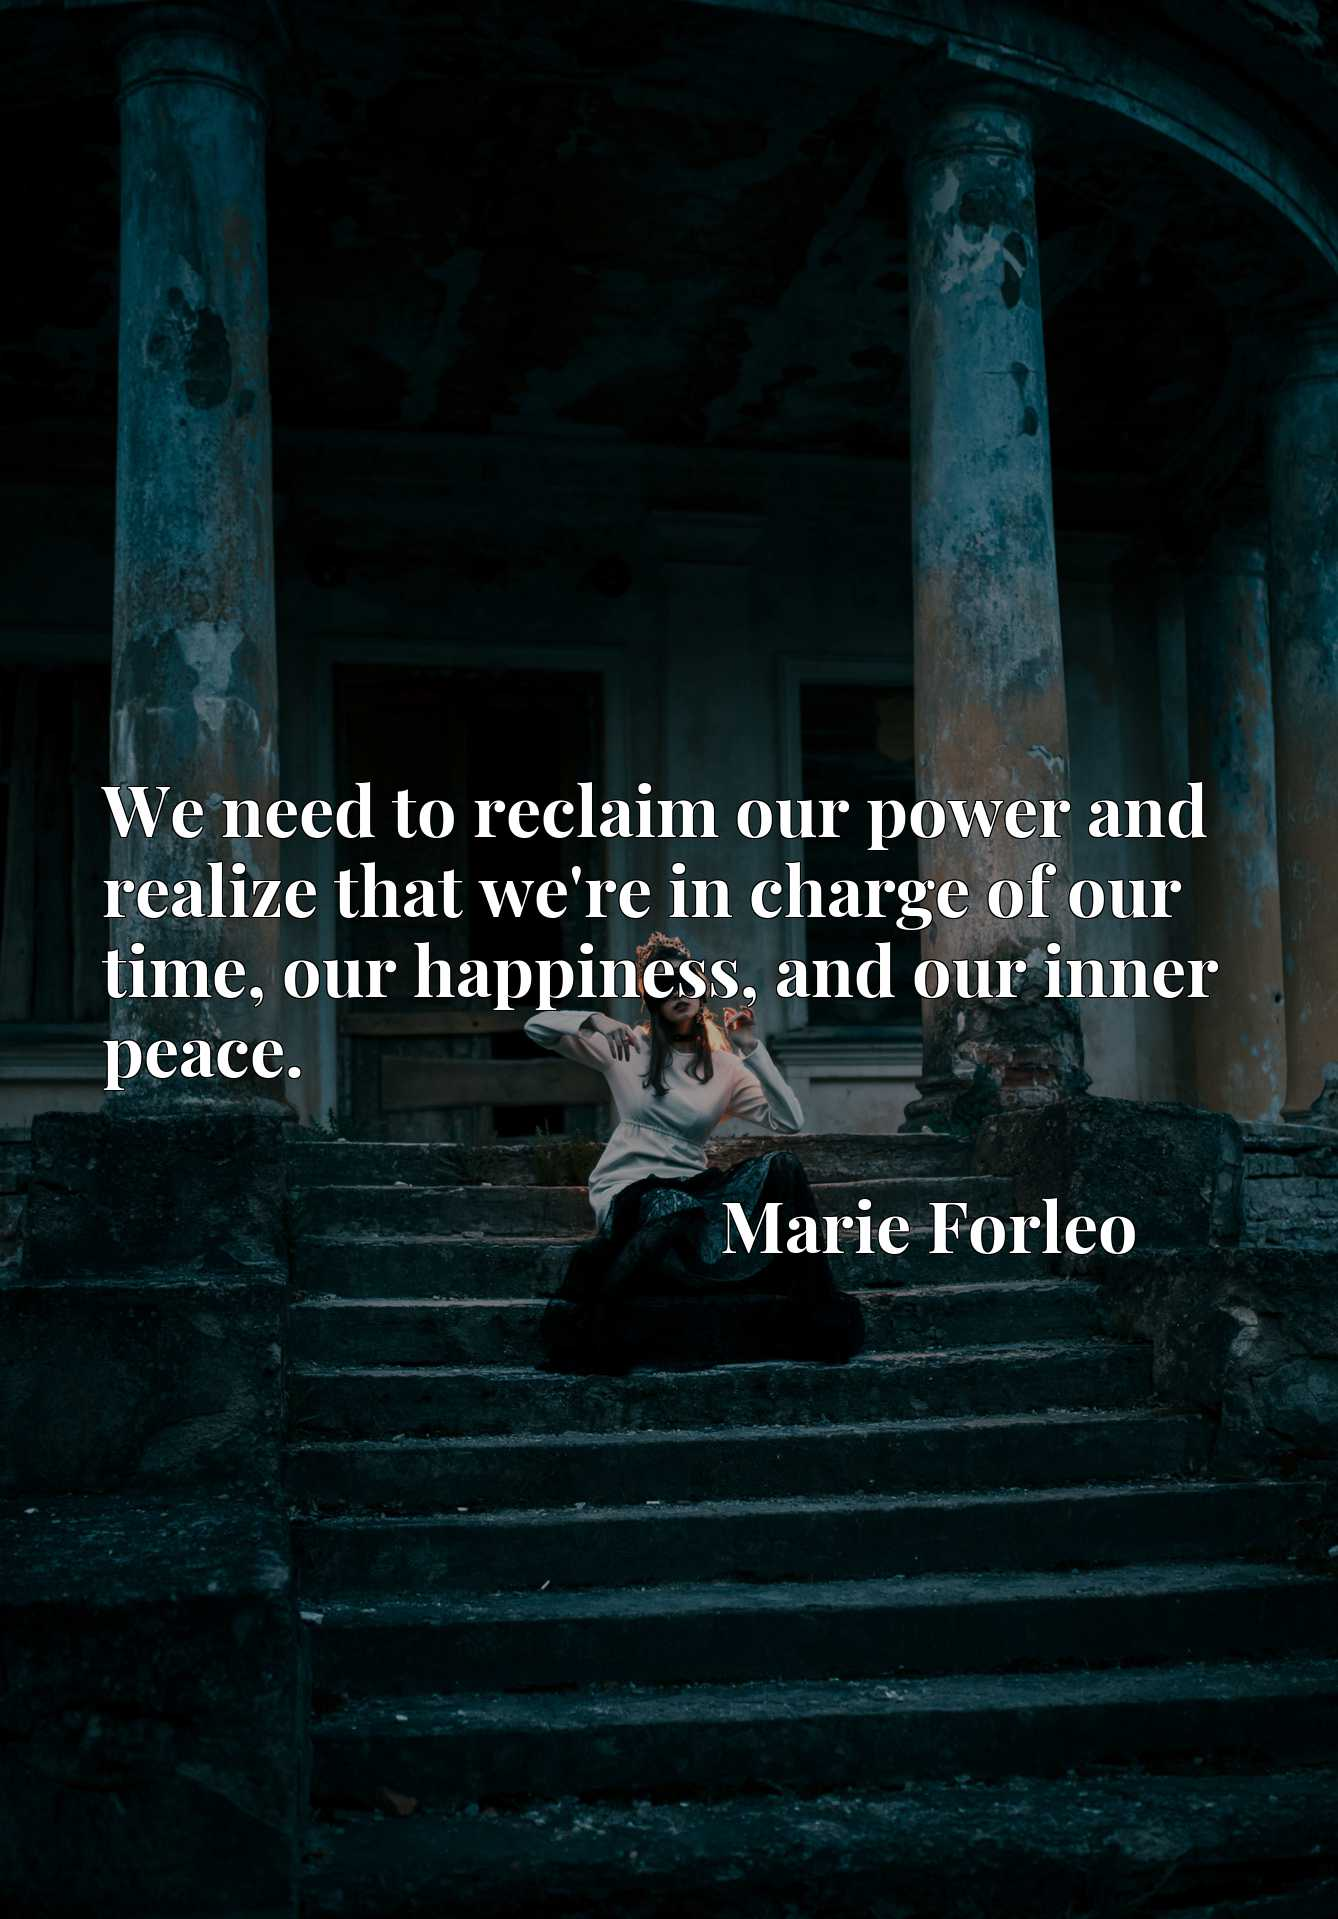 Quote Picture :We need to reclaim our power and realize that we're in charge of our time, our happiness, and our inner peace.